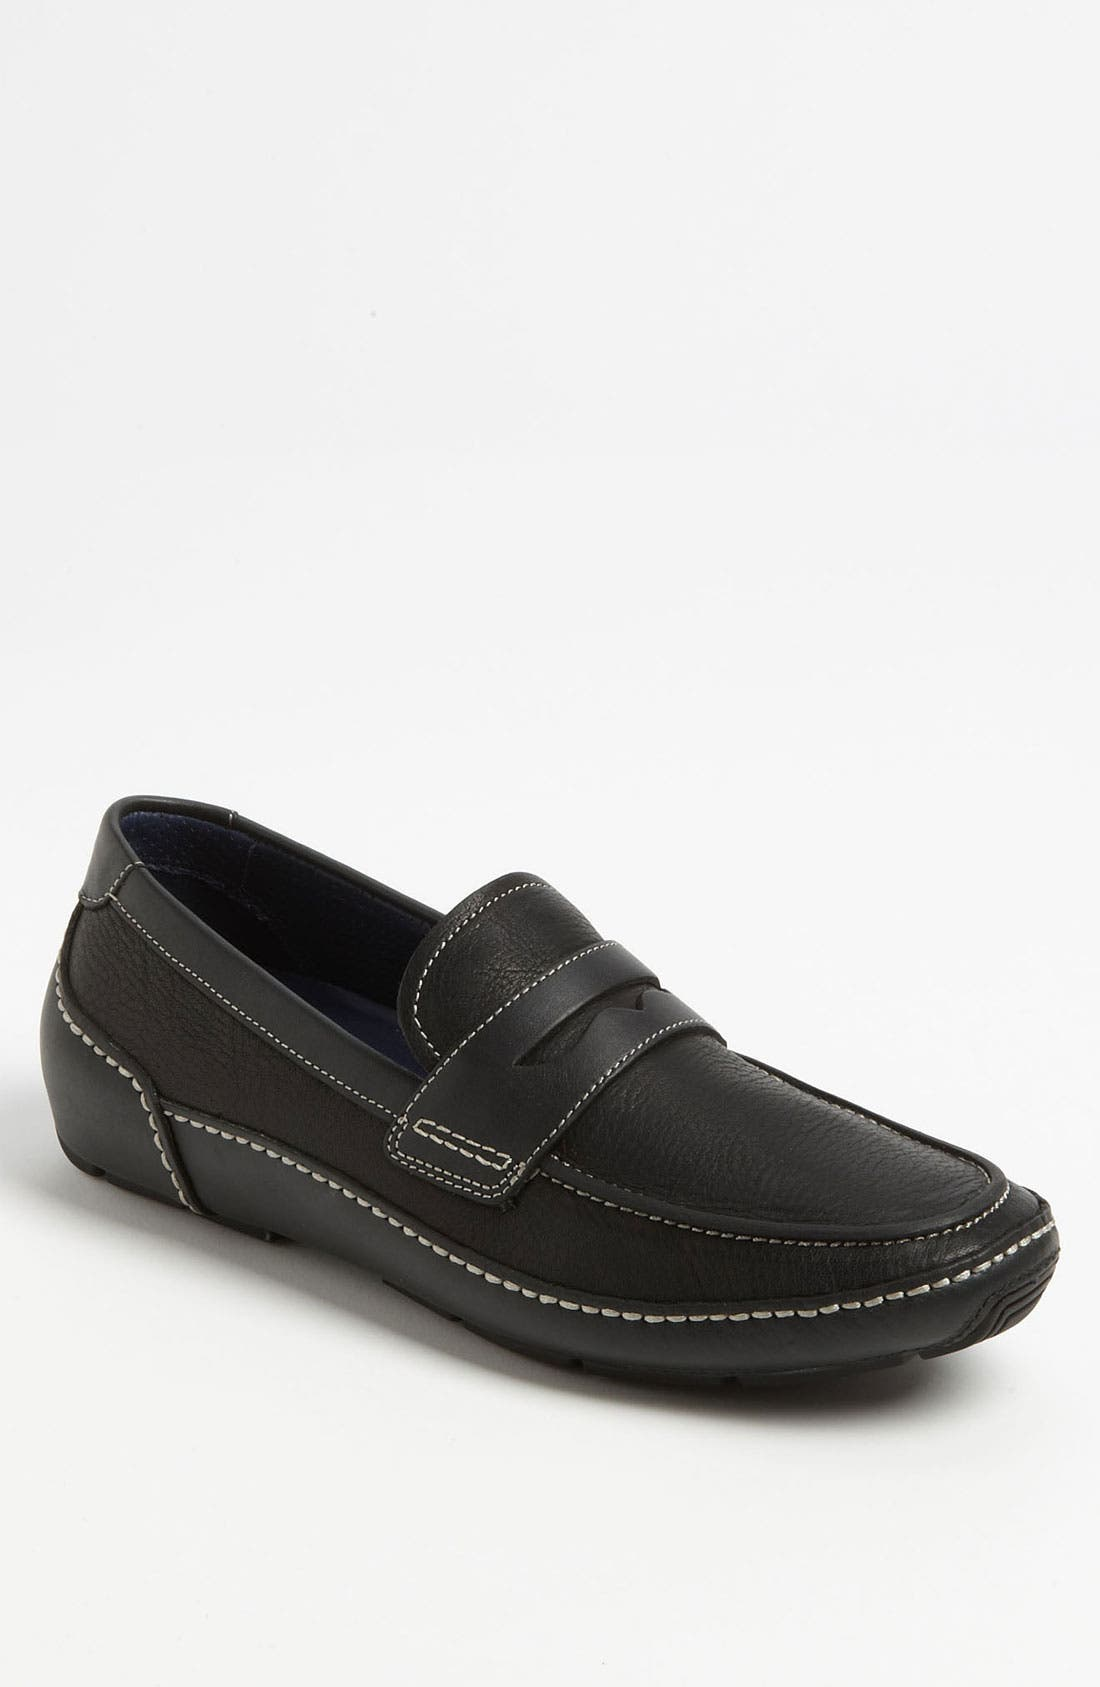 Alternate Image 1 Selected - Cole Haan 'Air Mitchell' Driving Shoe   (Men)